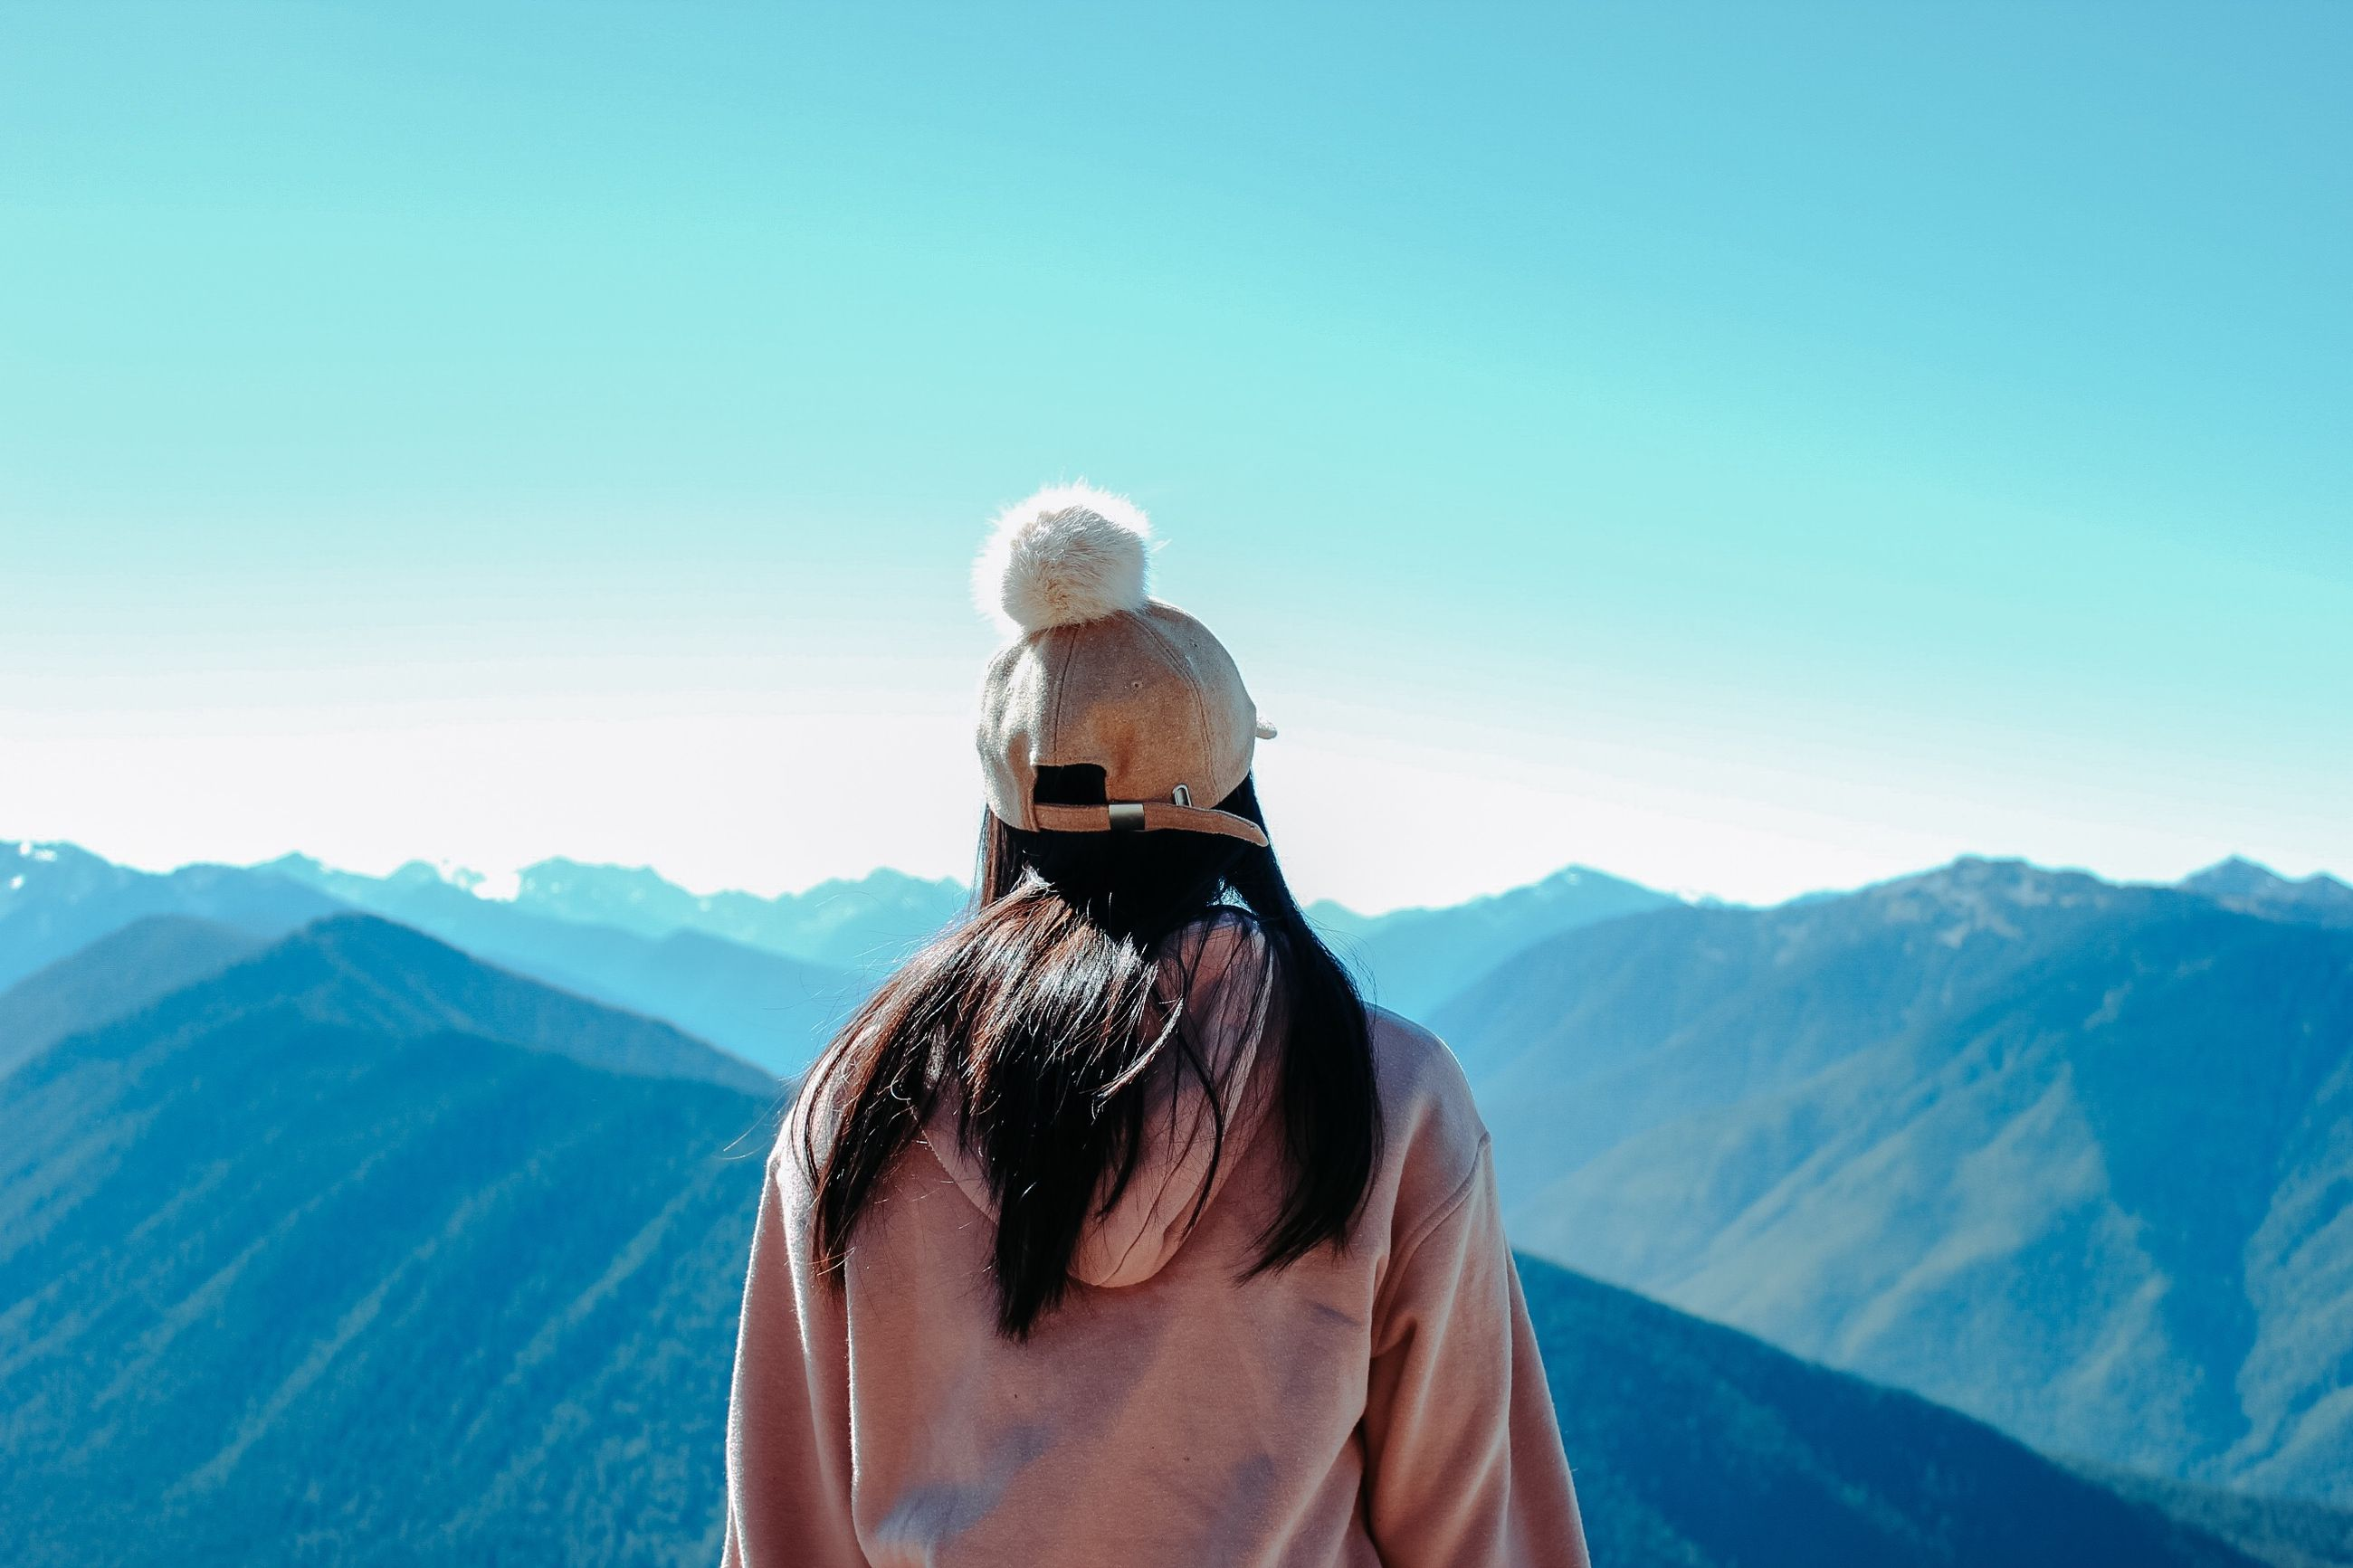 rear view, mountain, sky, real people, beauty in nature, leisure activity, one person, lifestyles, winter, scenics - nature, nature, mountain range, tranquil scene, adult, day, women, clear sky, copy space, holiday, warm clothing, looking at view, hairstyle